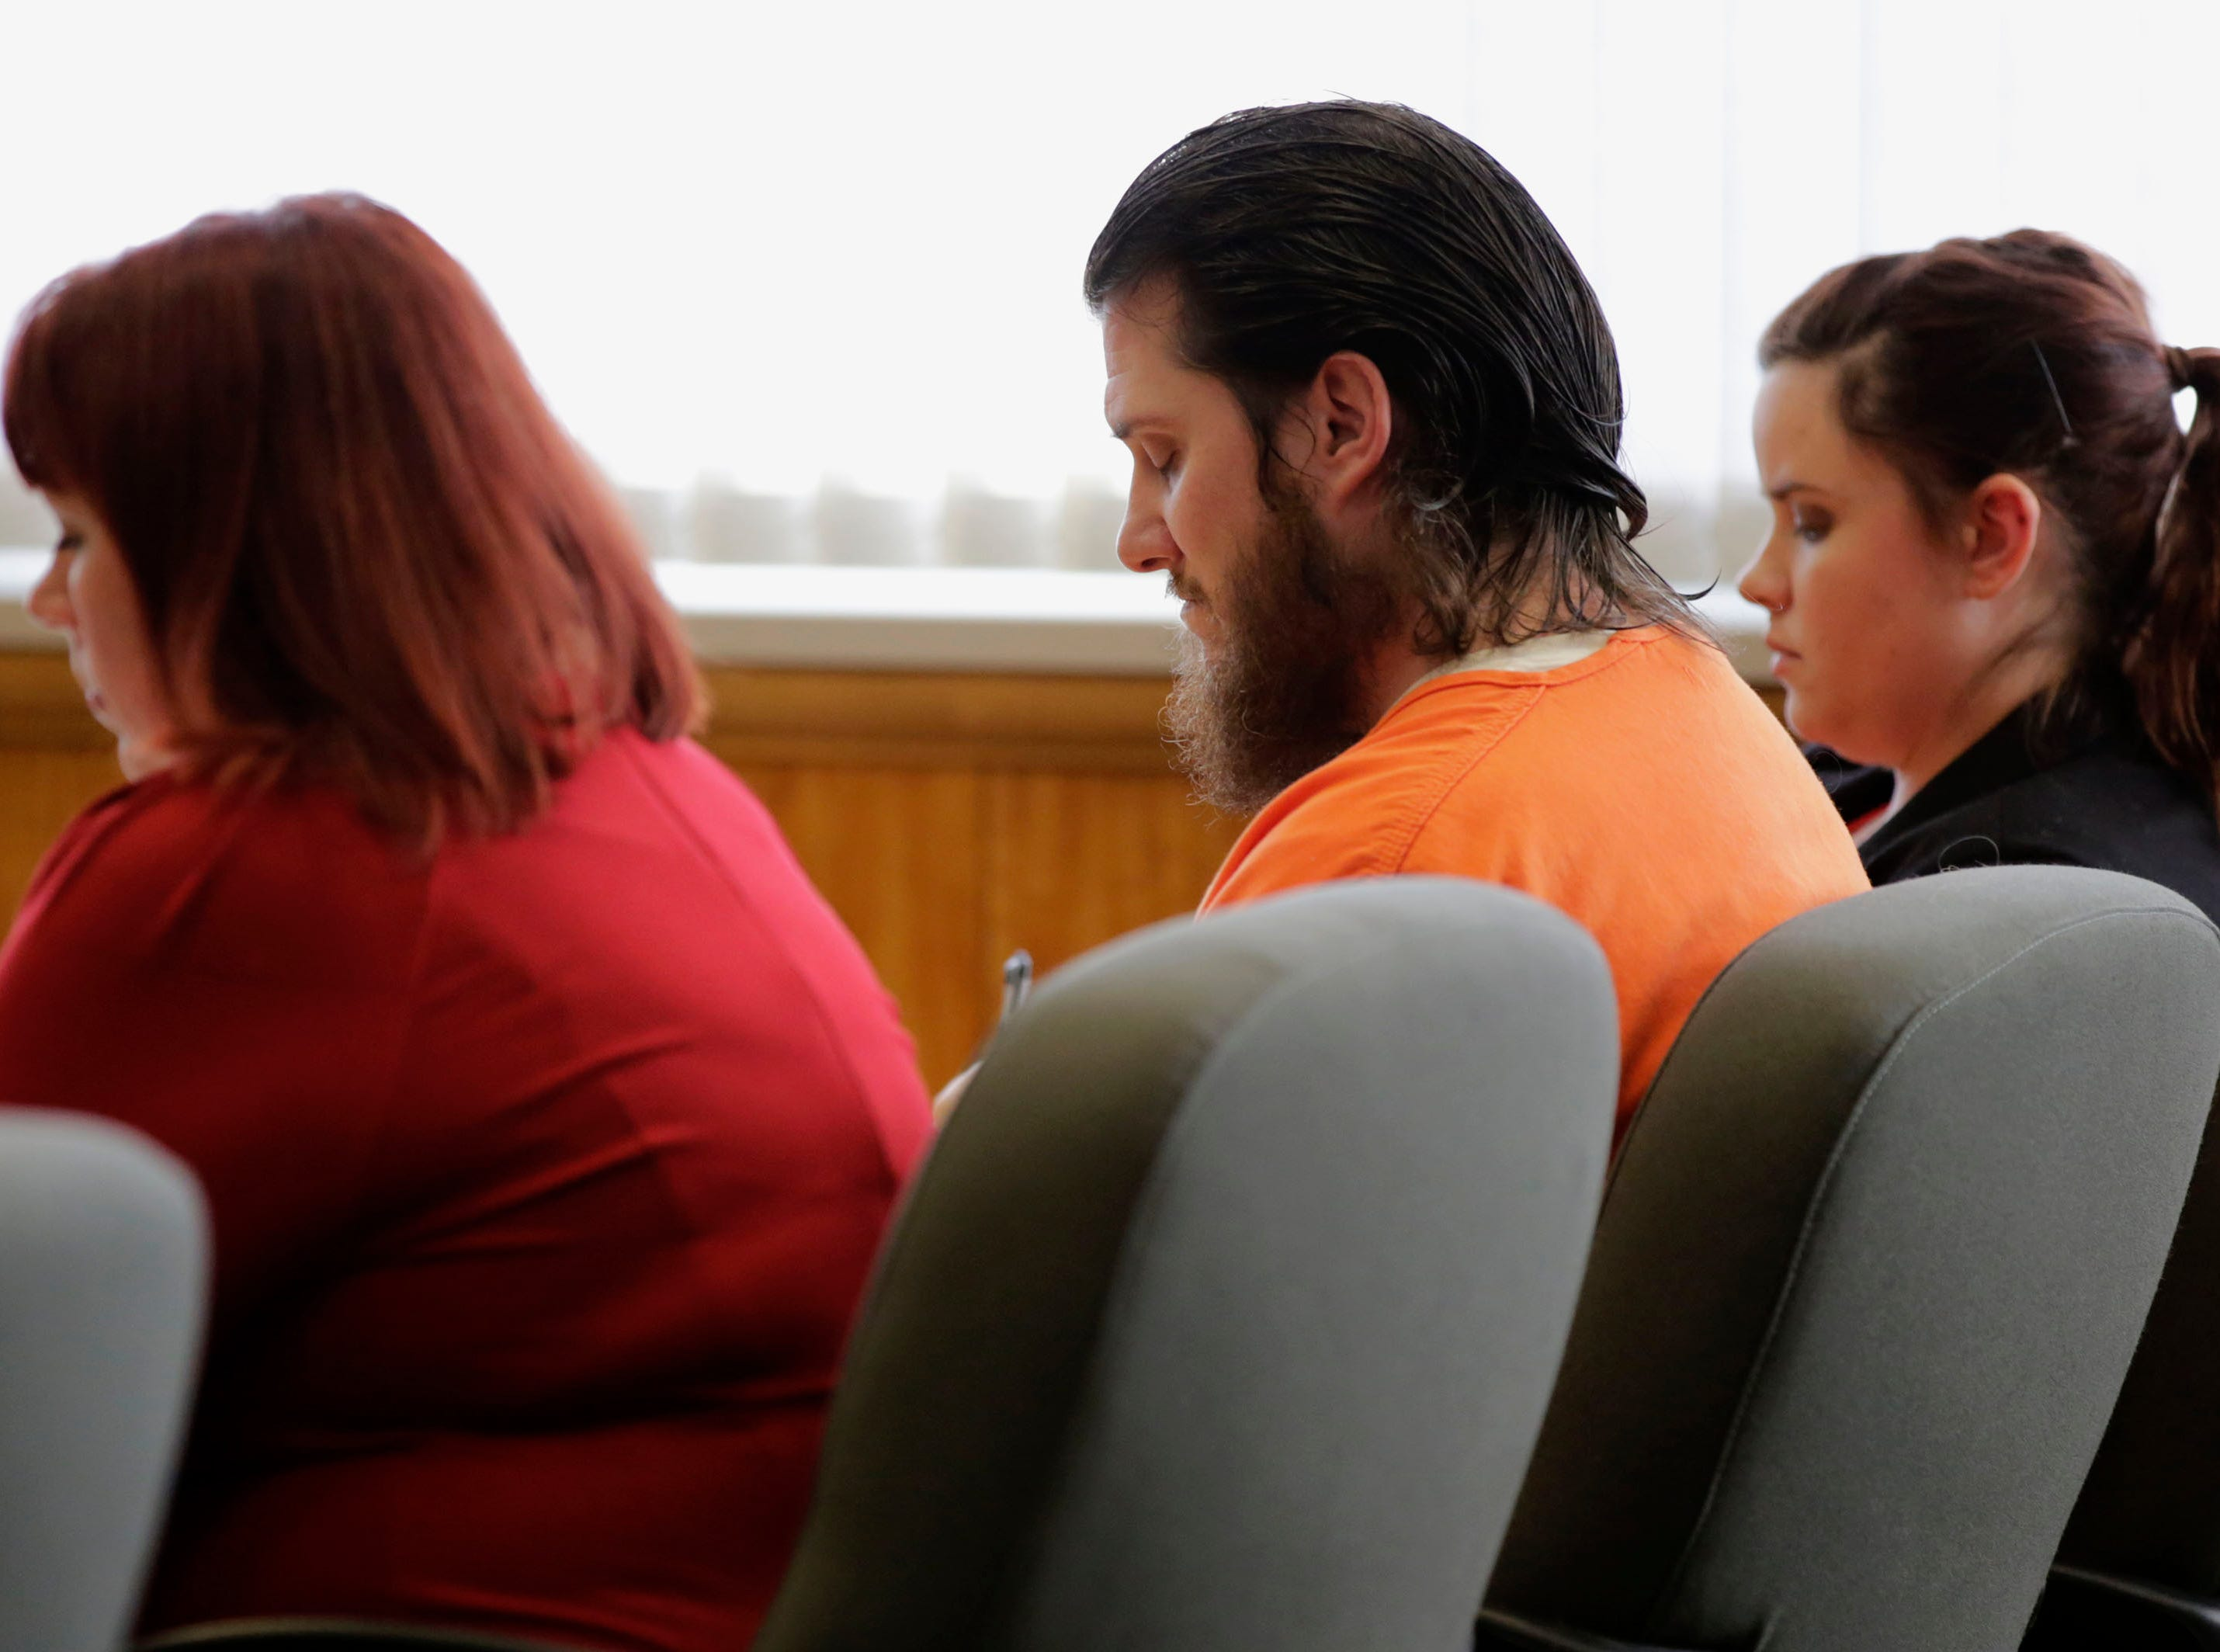 James Georgeson sits at the defense table during a sentencing hearing on Friday, December 14, 2018, at the Wood County courthouse in Wisconsin Rapids, Wis. Georgeson was convicted of second-degree reckless homicide for the death of his infant son, and was sentenced to 15 years confinement with an additional 10 years of extended supervision.Tork Mason/USA TODAY NETWORK-Wisconsin